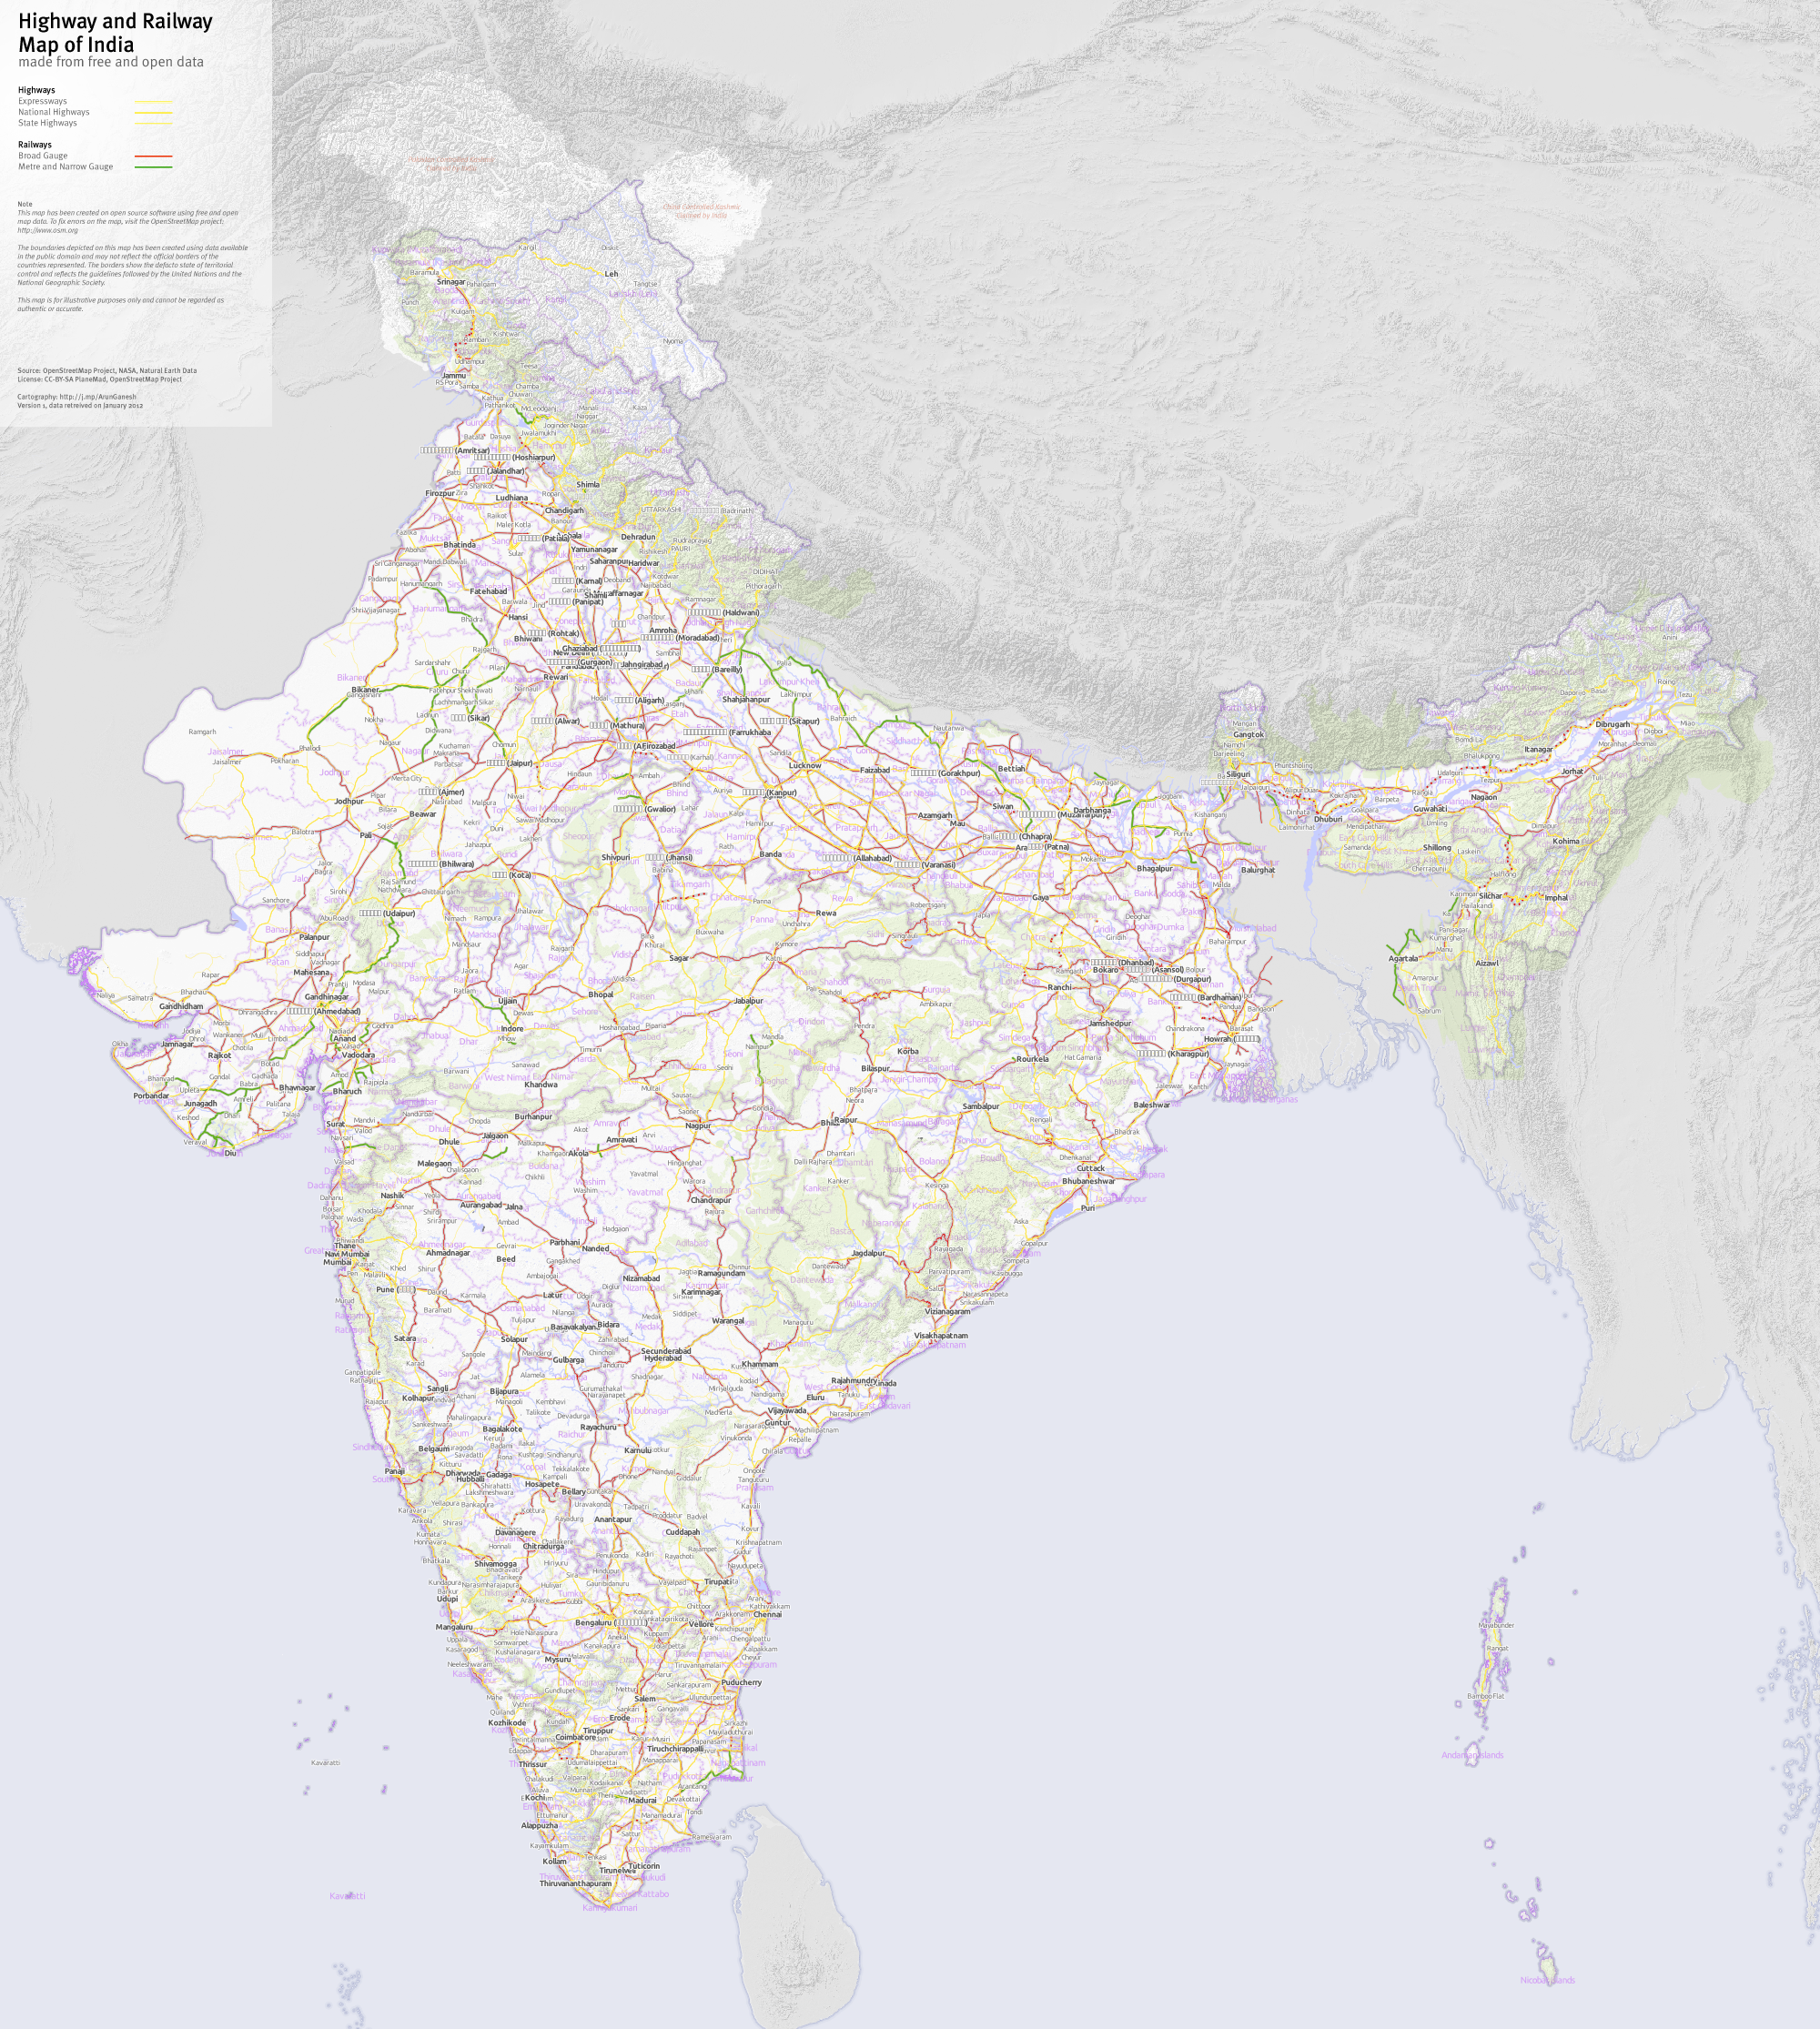 File:Highway and Railway Map of India OSM png - Wikimedia